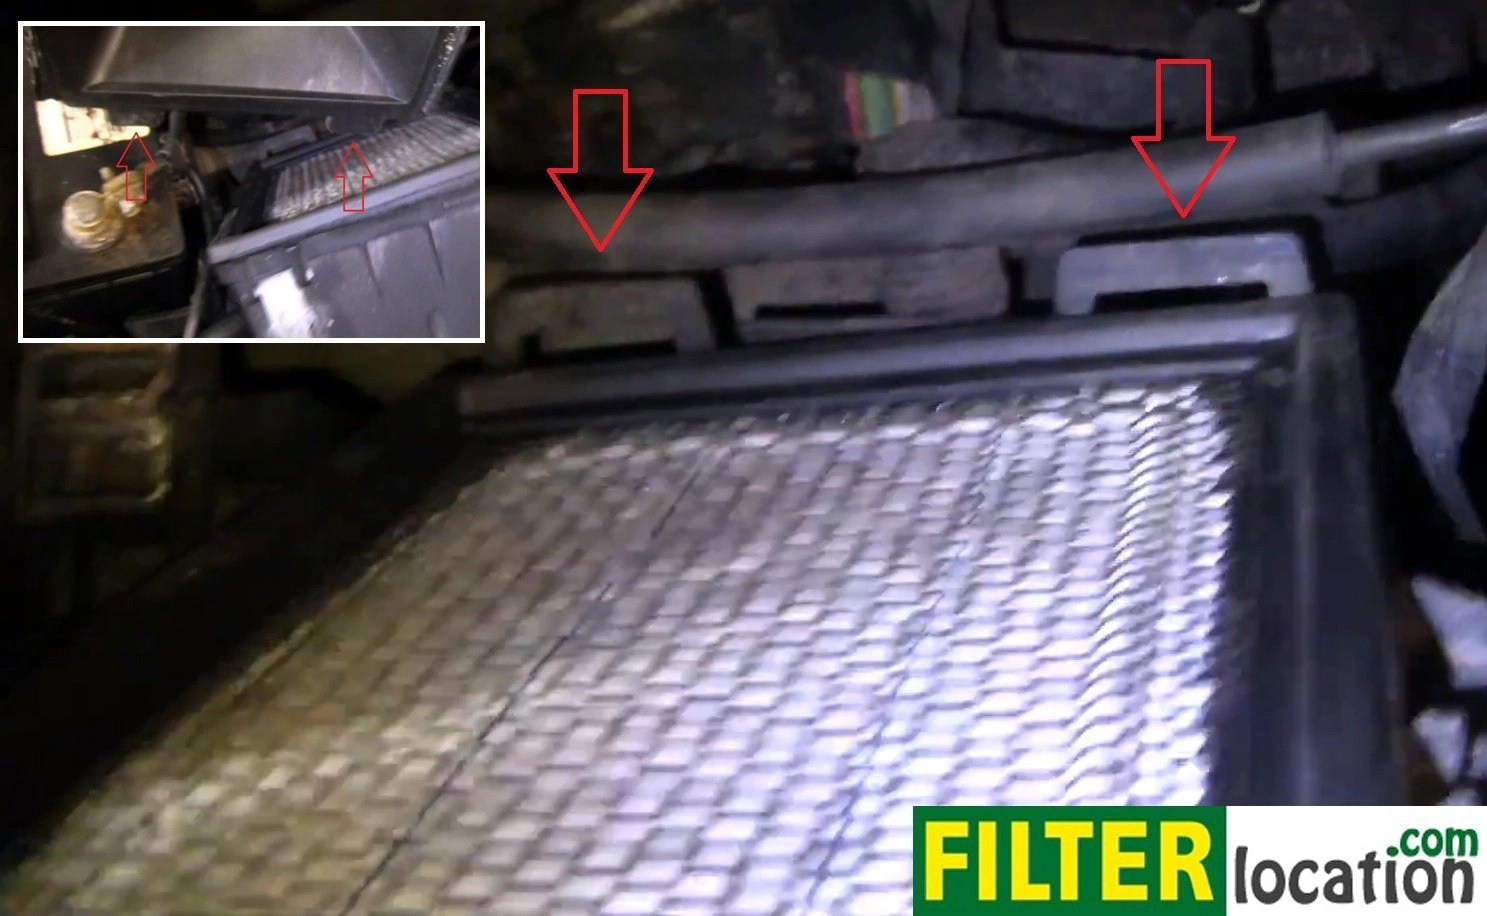 hight resolution of  but make sure the two tabs at the bottom of the side with the intake hose are aligned and will enter the slots on the side containing the filter